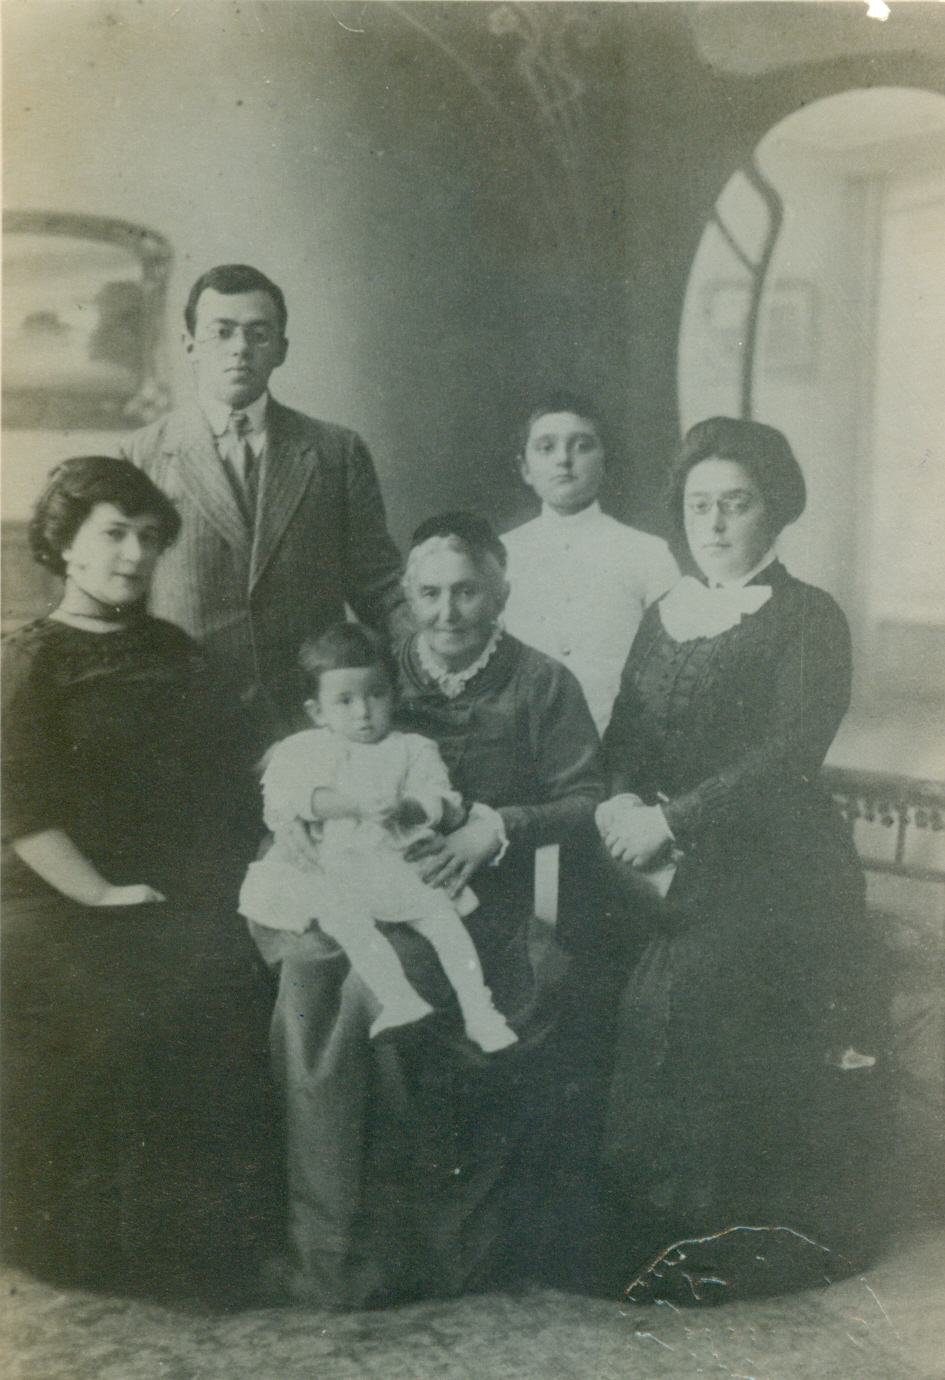 Zeev Jabotinsky, Joanna, Eri, his mother, Hava, his sister, Tamar and her son, Yonah Kopp